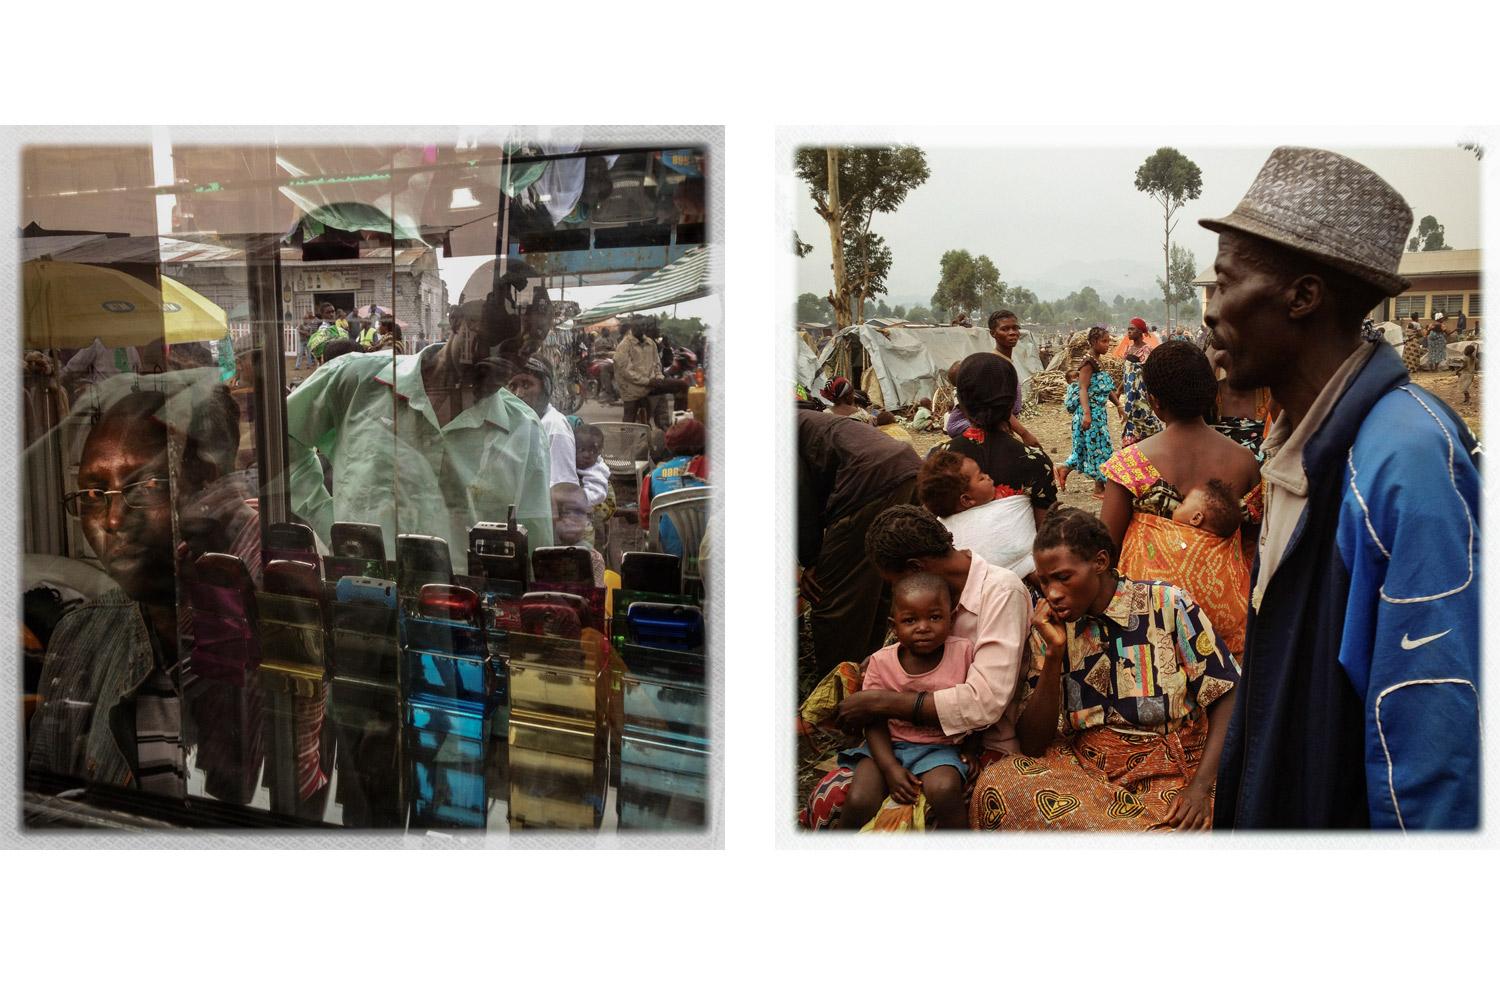 A mobile phone stand in Goma (left) and an IDP camp in nearby Kibati (right).